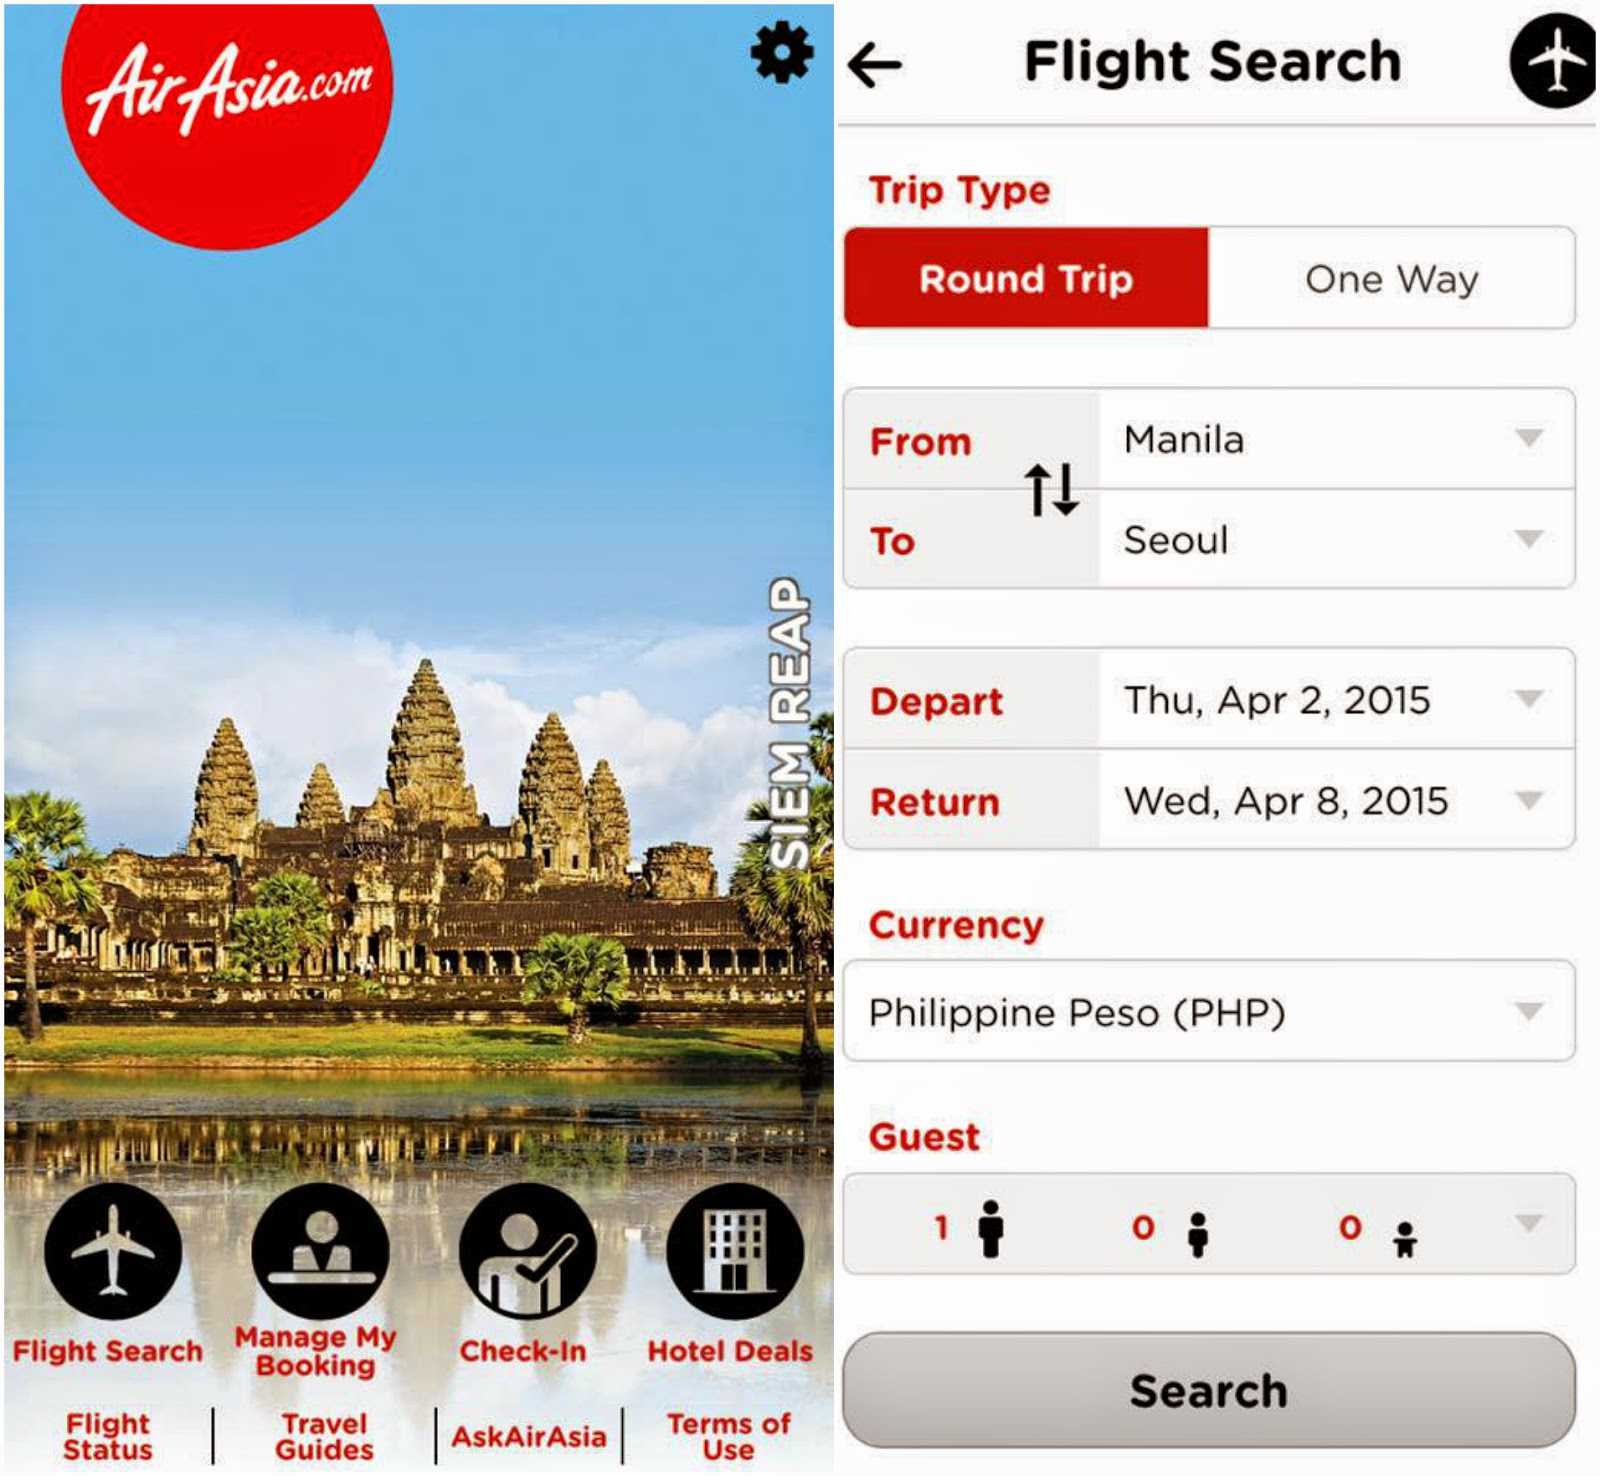 FTW! Blog, Flight Booking Apps, AirAsia